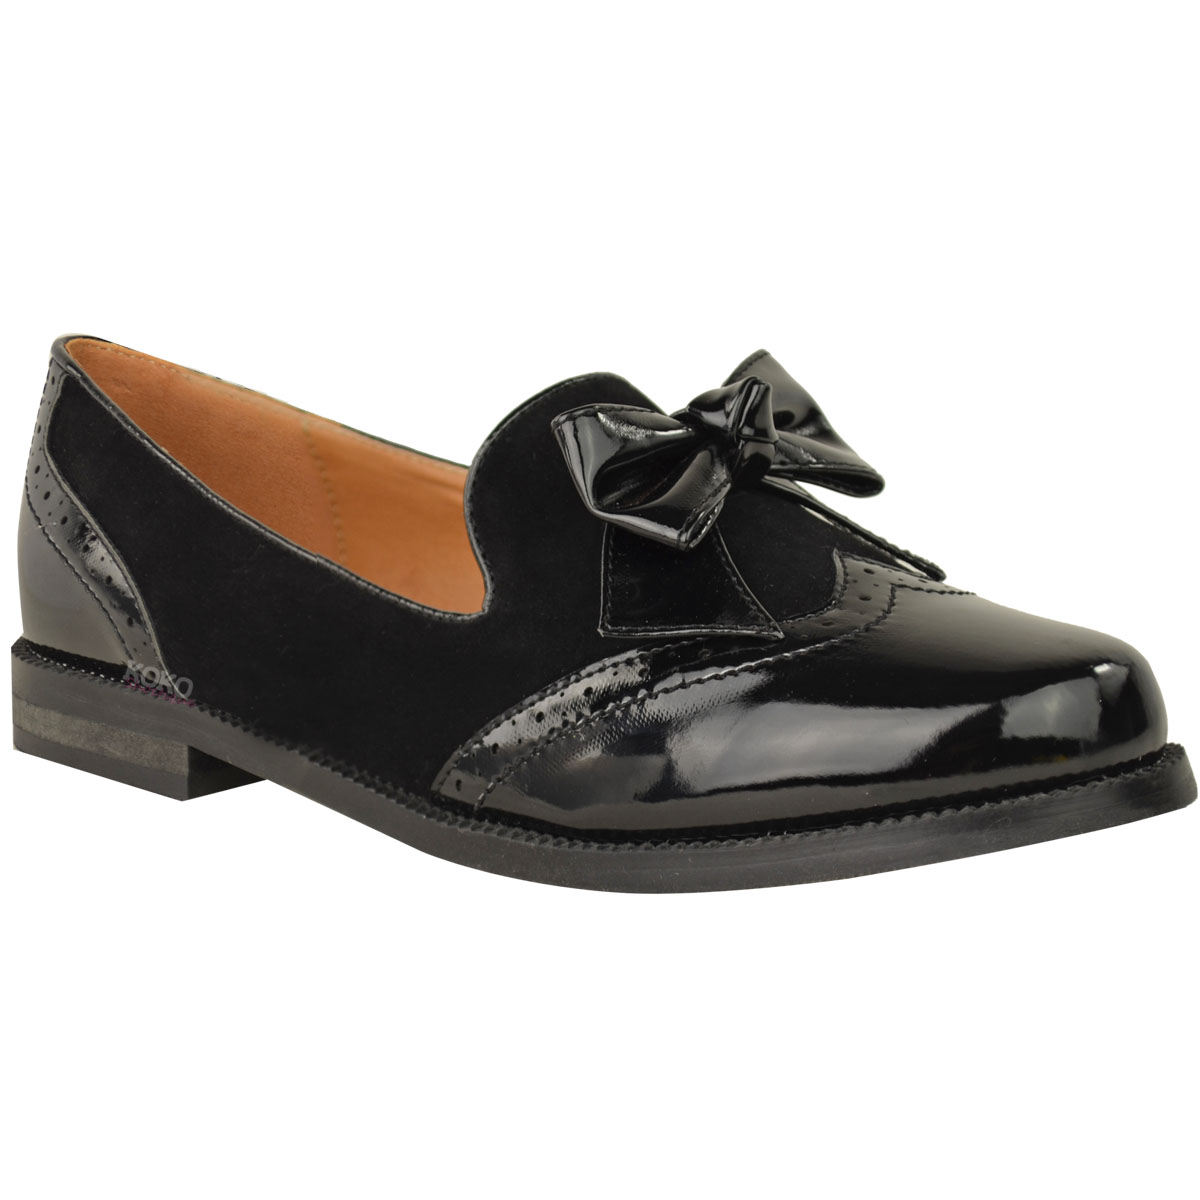 WOMENS LADIES LOAFERS SHOES FLATS BOW FORMAL WORK OFFICE SMART SCHOOL PUMPS SIZE | EBay